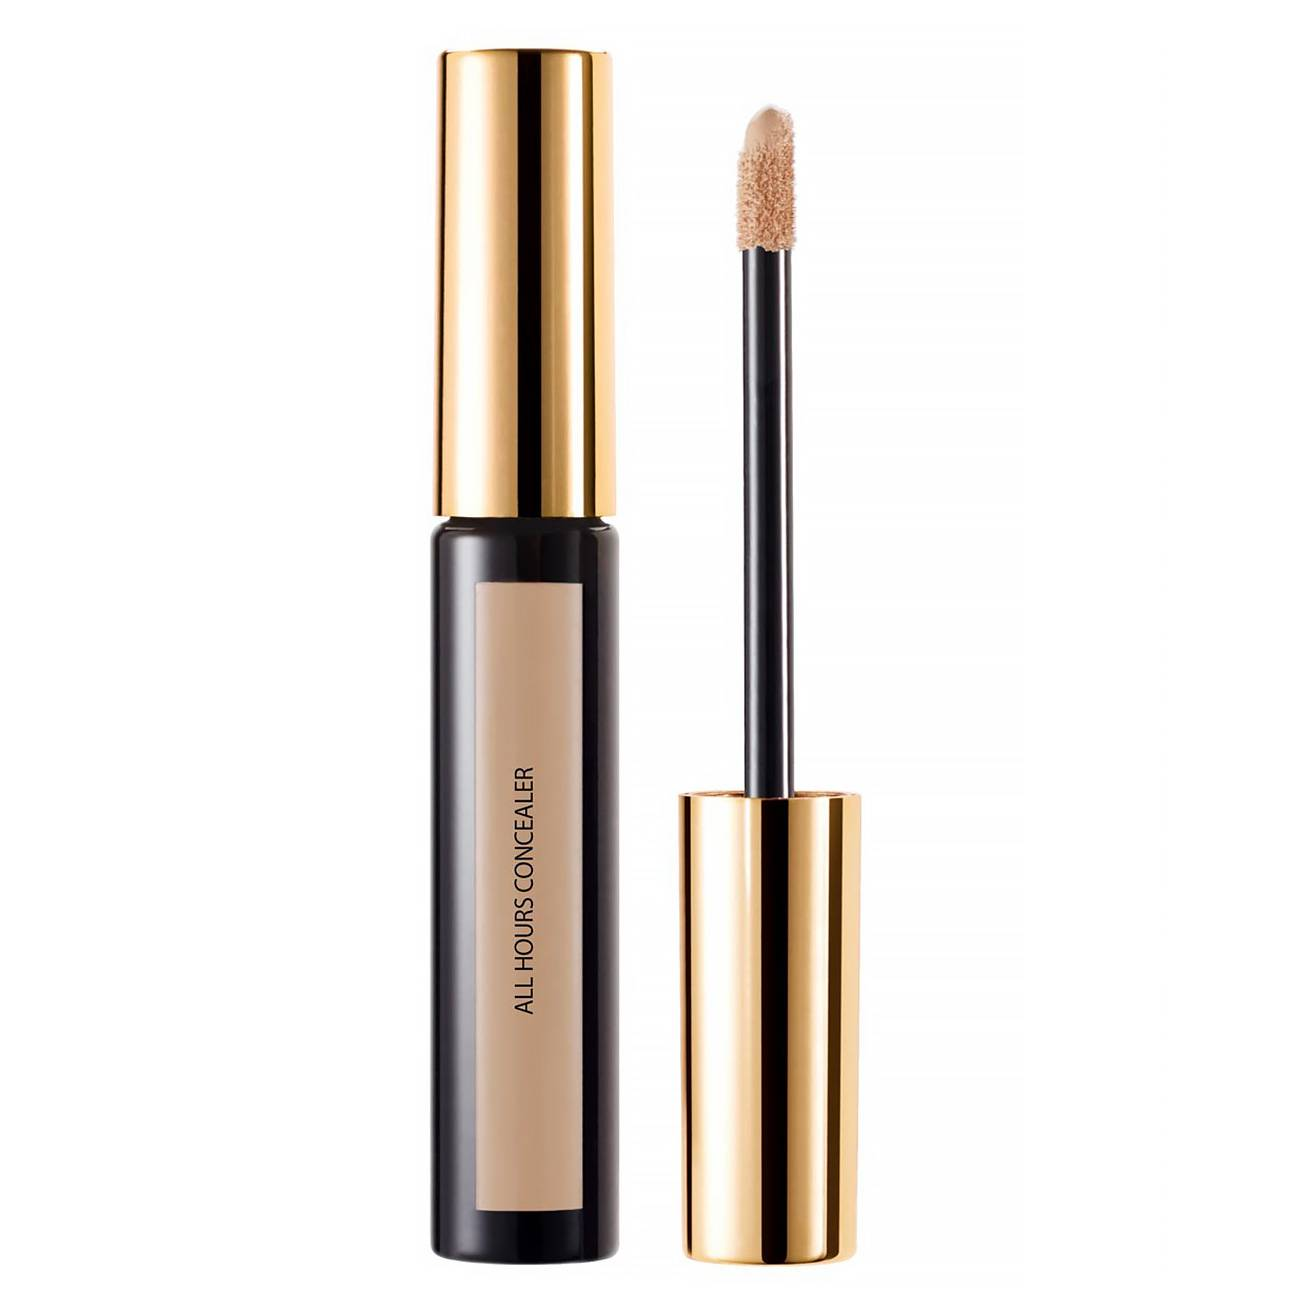 Encre De Peau All Hours Concealer 4 5ml Yves Saint Laurent imagine 2021 bestvalue.eu